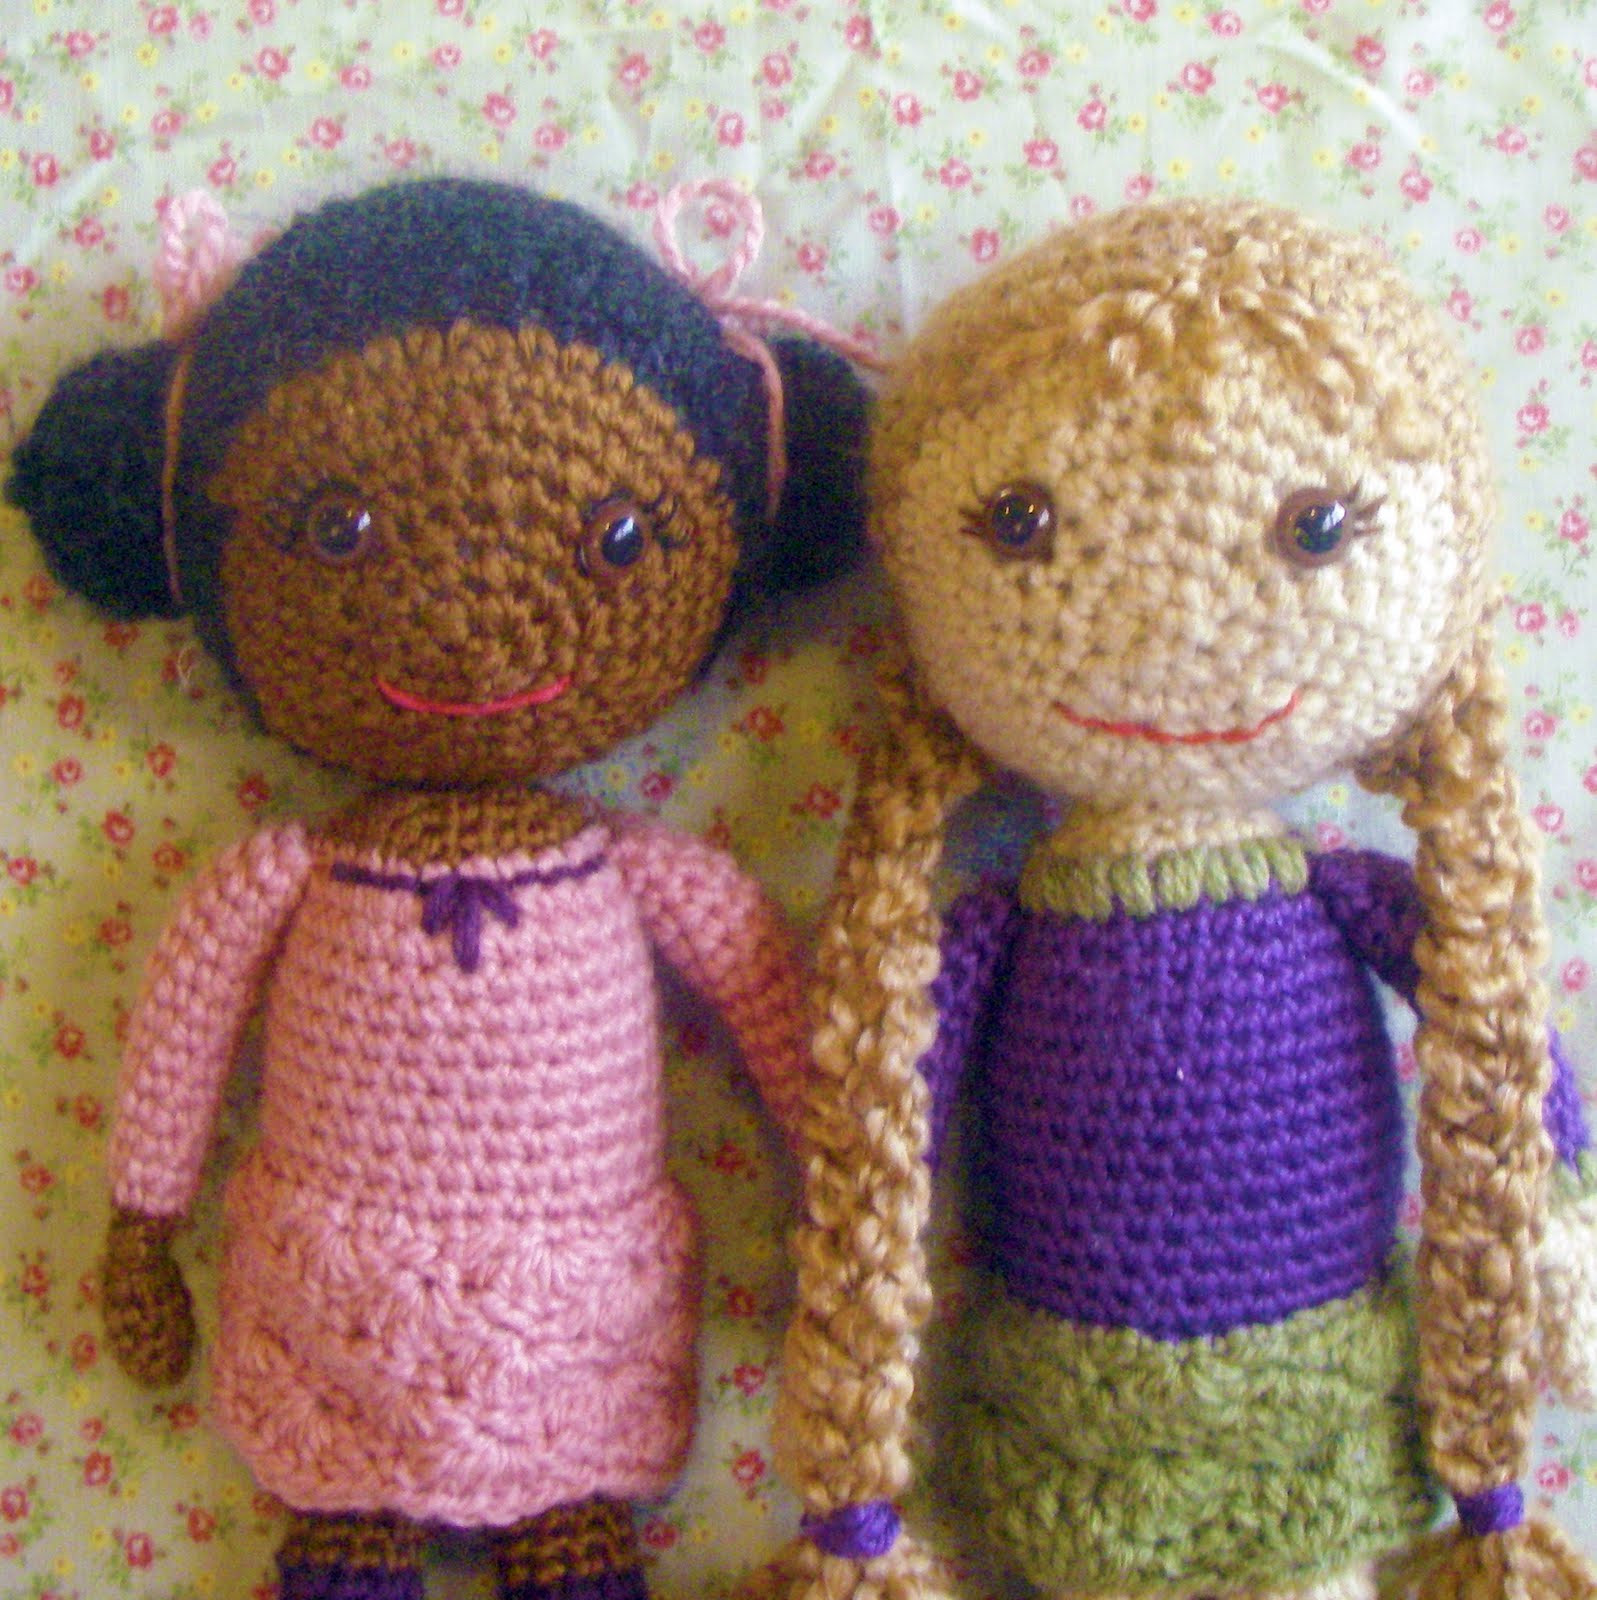 "Doll Patterns Inspirational 12"" Doll Crochet Pattern Mamacheemamachee Of Doll Patterns Best Of My Rag Doll Adorable Dolls to Sew"